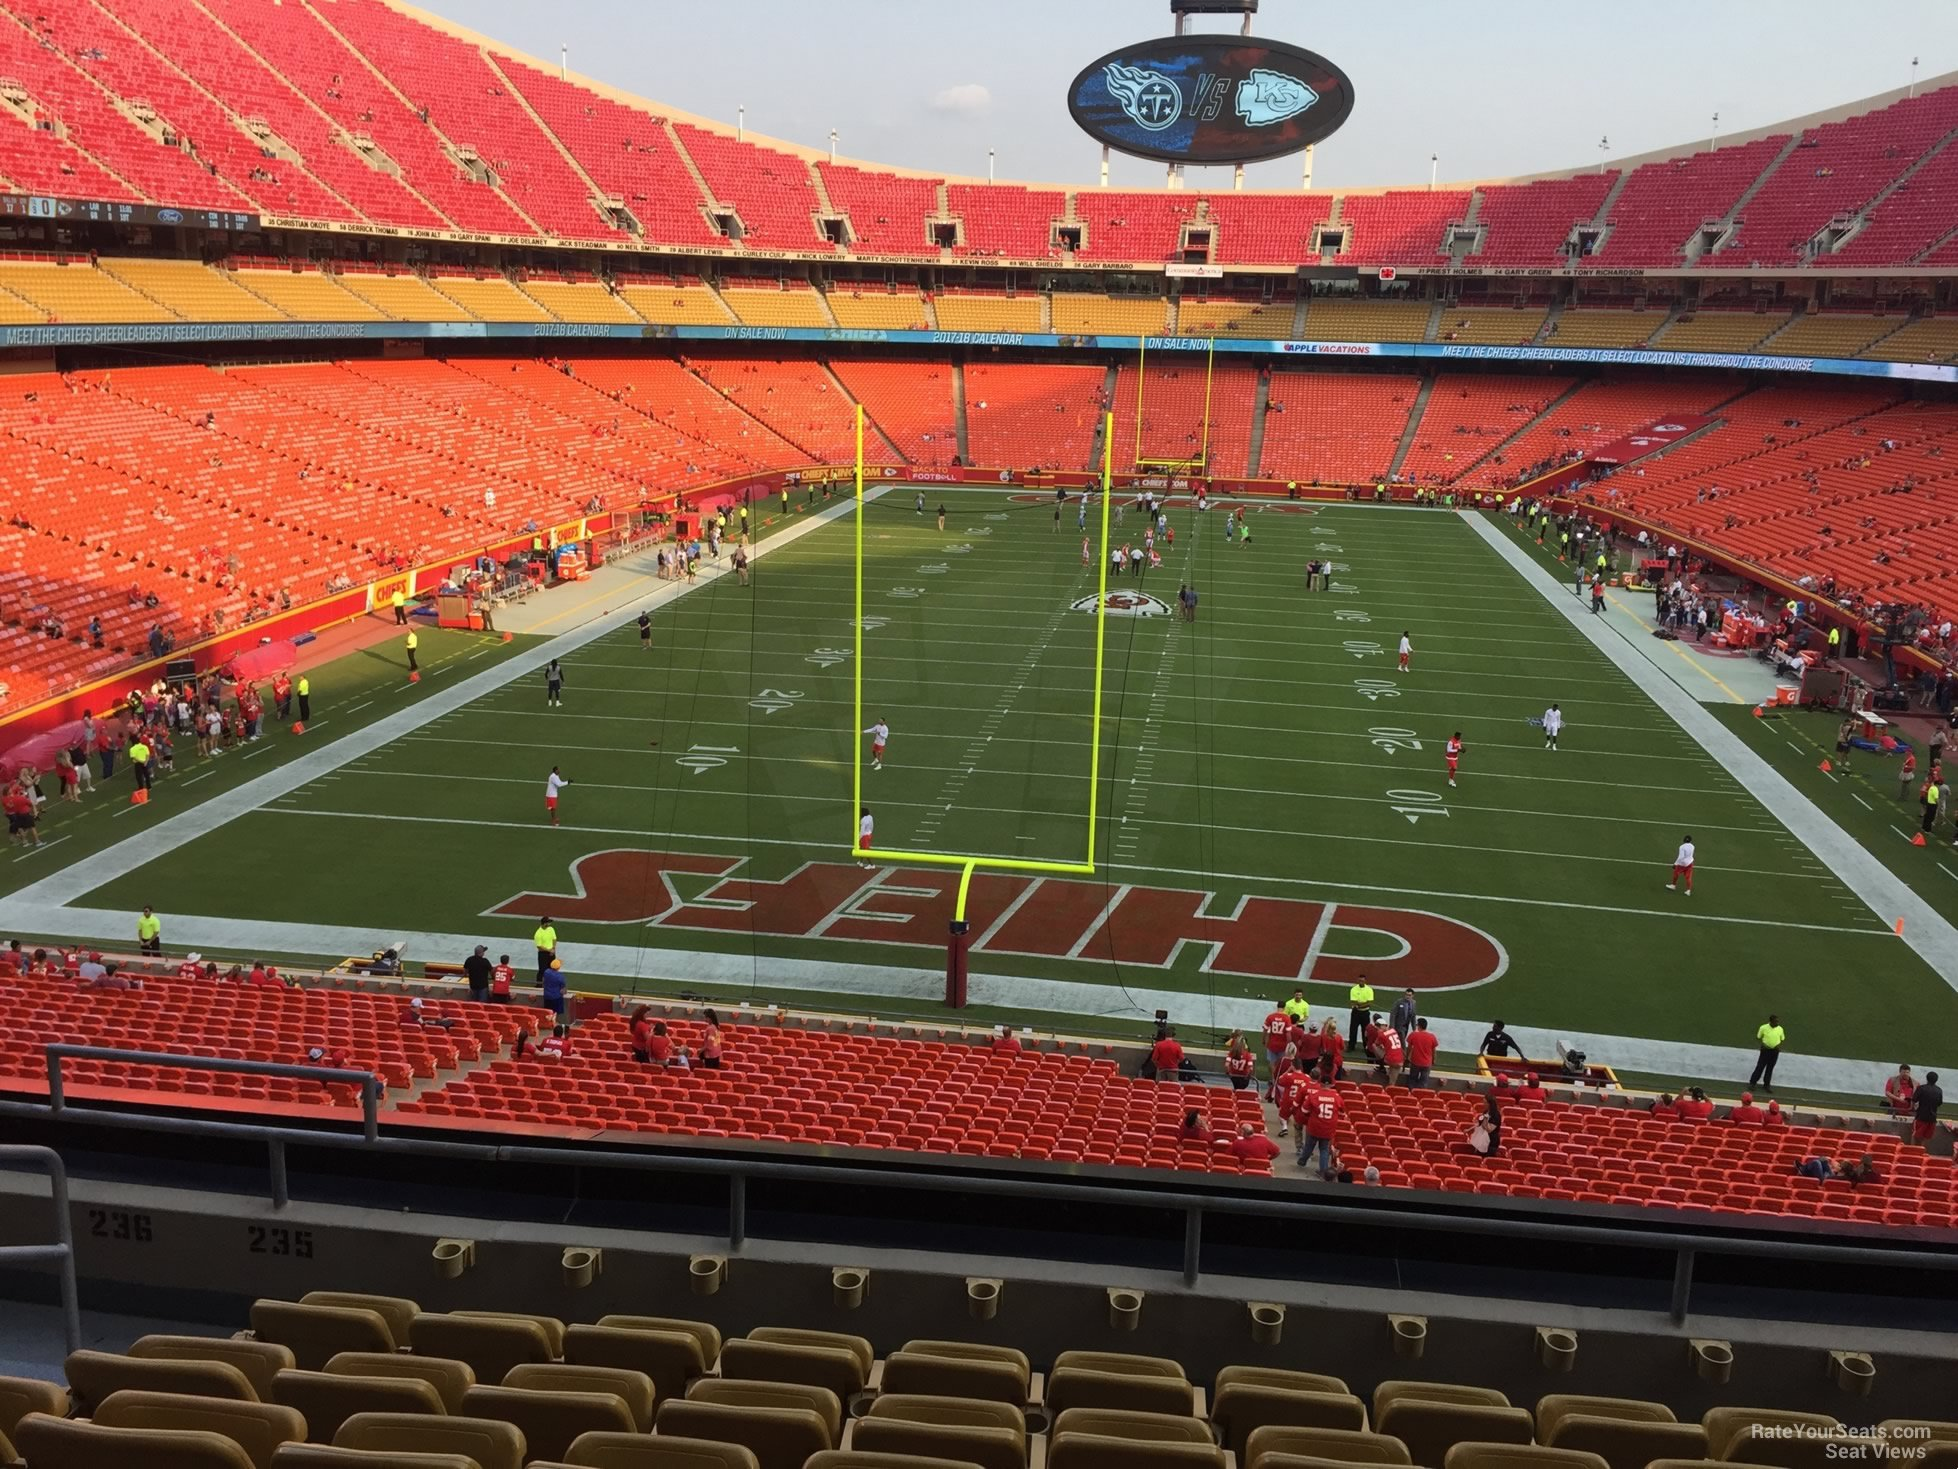 Seat View for Arrowhead Stadium Section 235, Row 7